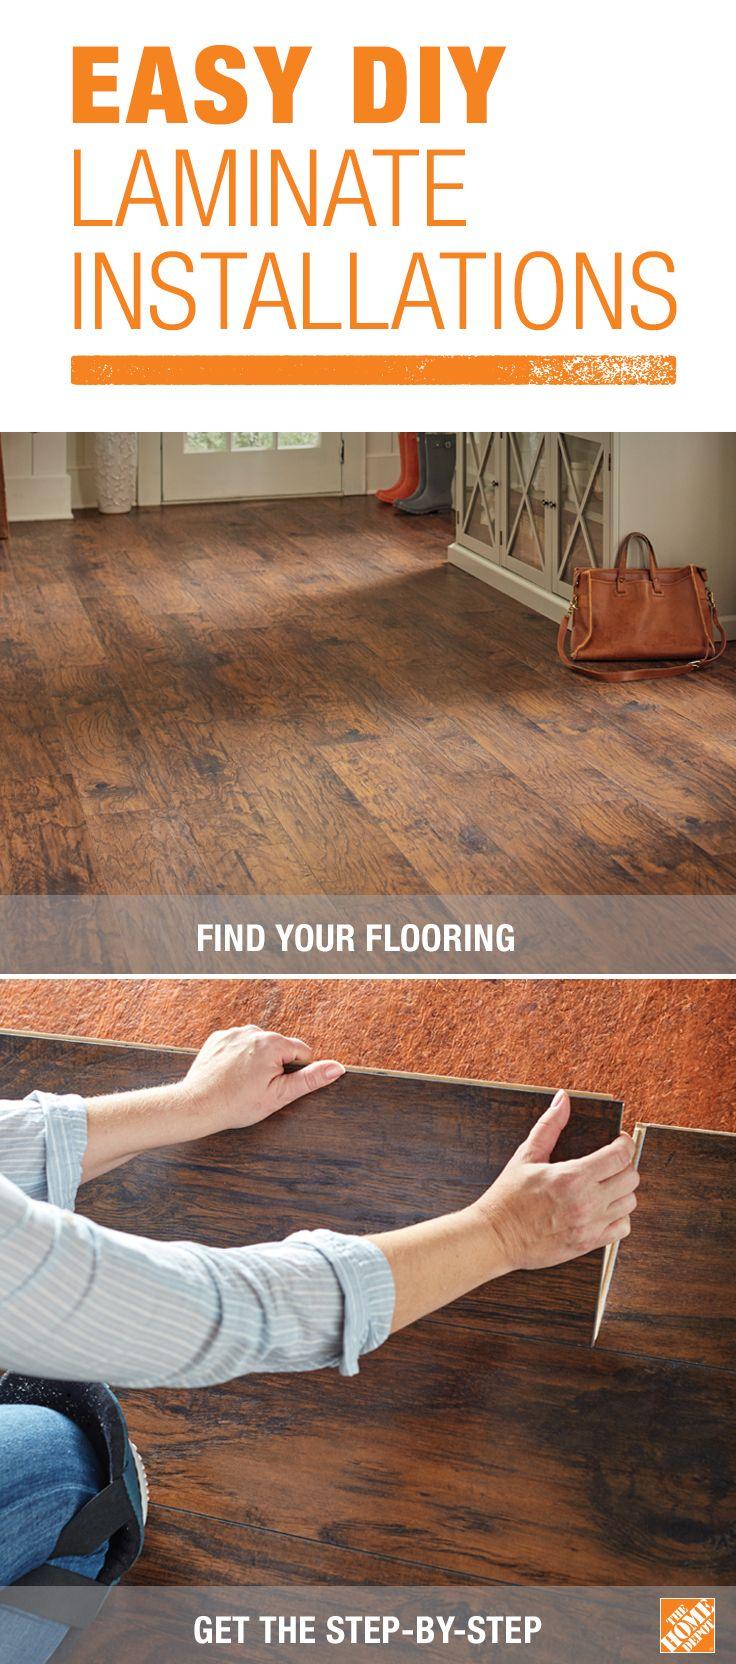 Most Diyers Can Install An Entire Room Of Laminate Flooring In One Day Most Laminate Flooring Comes In Plan Home Repairs Installing Laminate Flooring Flooring